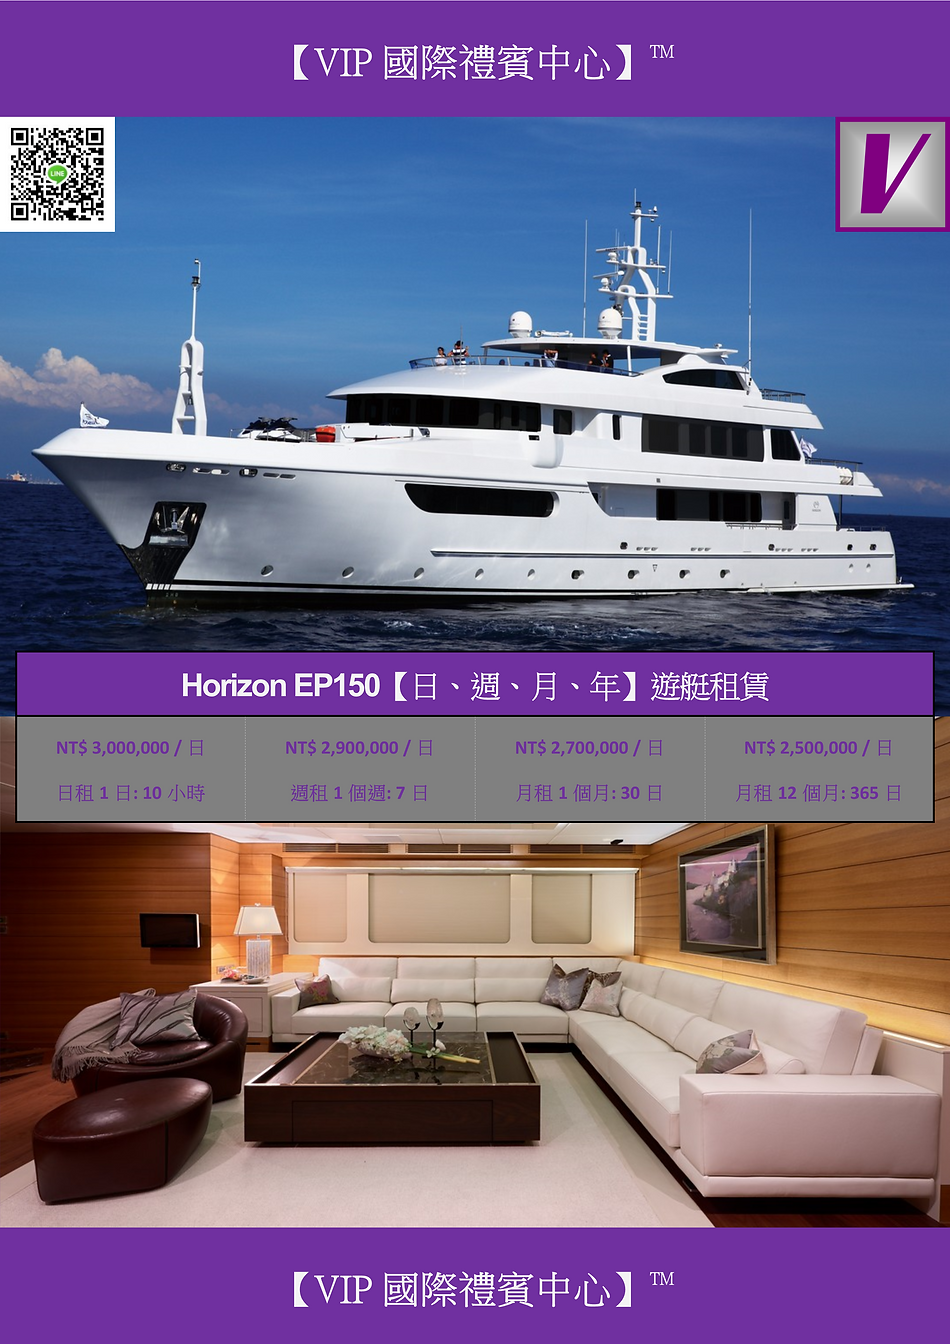 VIP國際禮賓中心 HORIZON EP150 DM.png